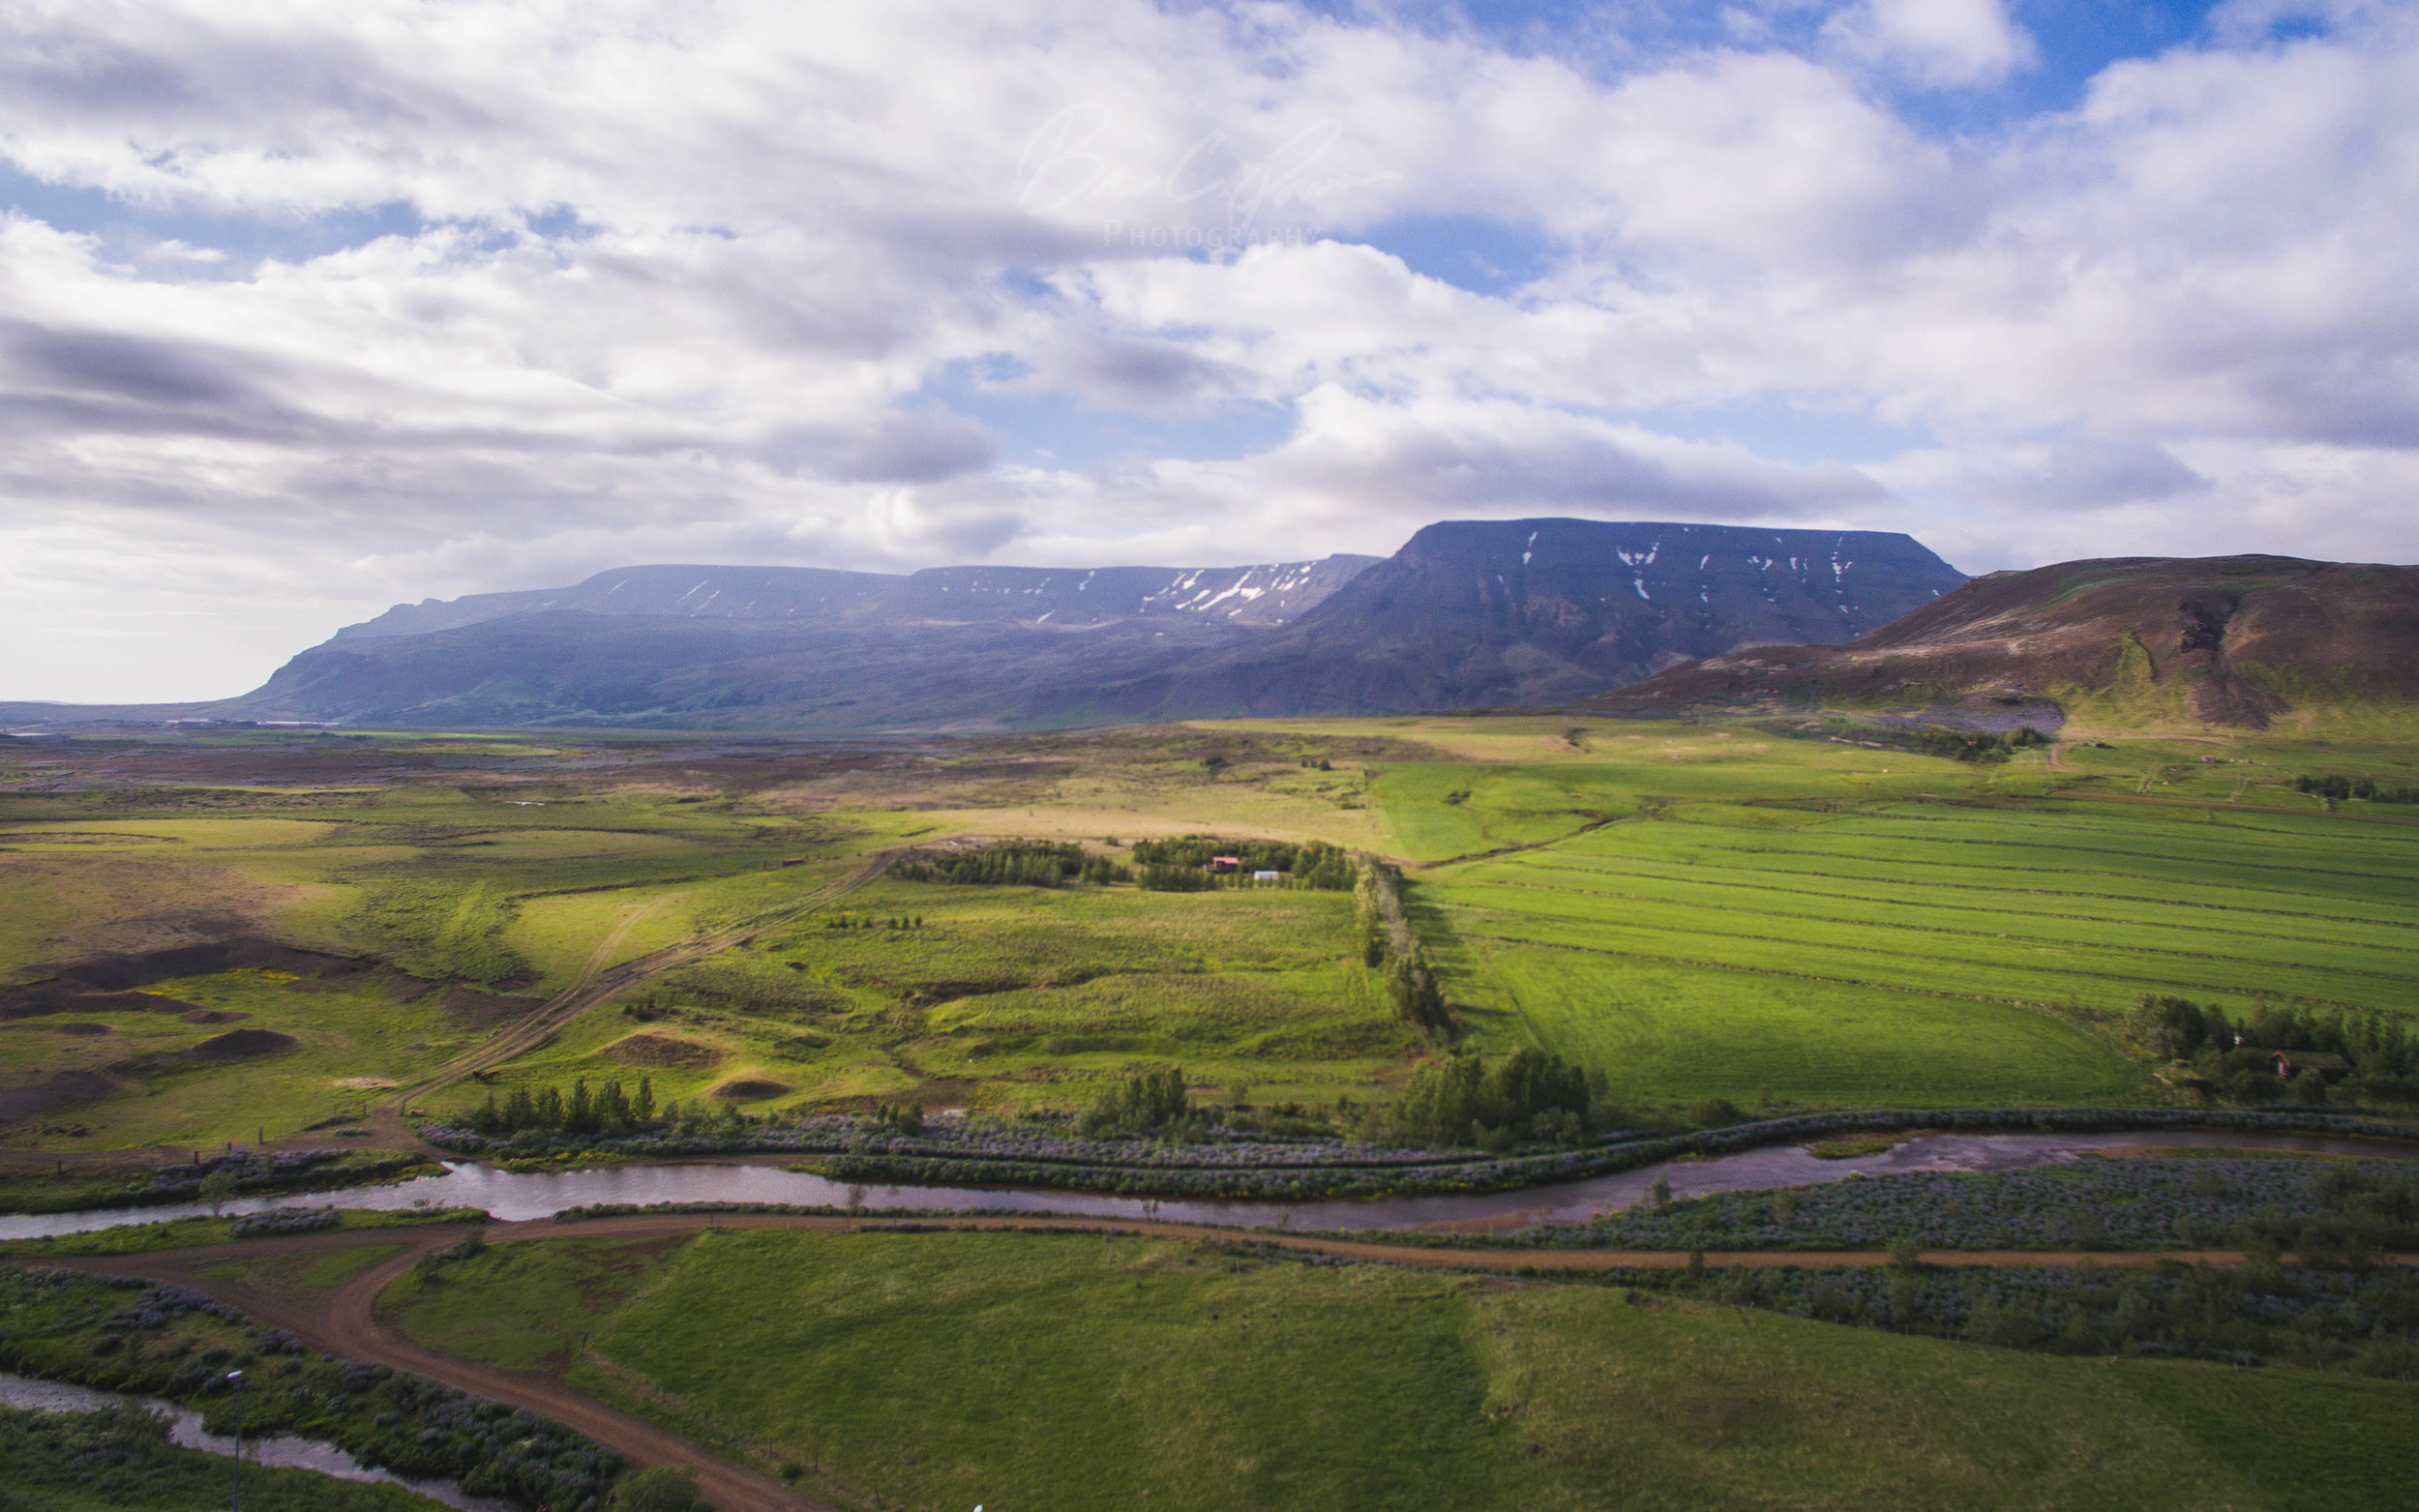 Mount Esja on the outskirts of Reykjavik, Iceland